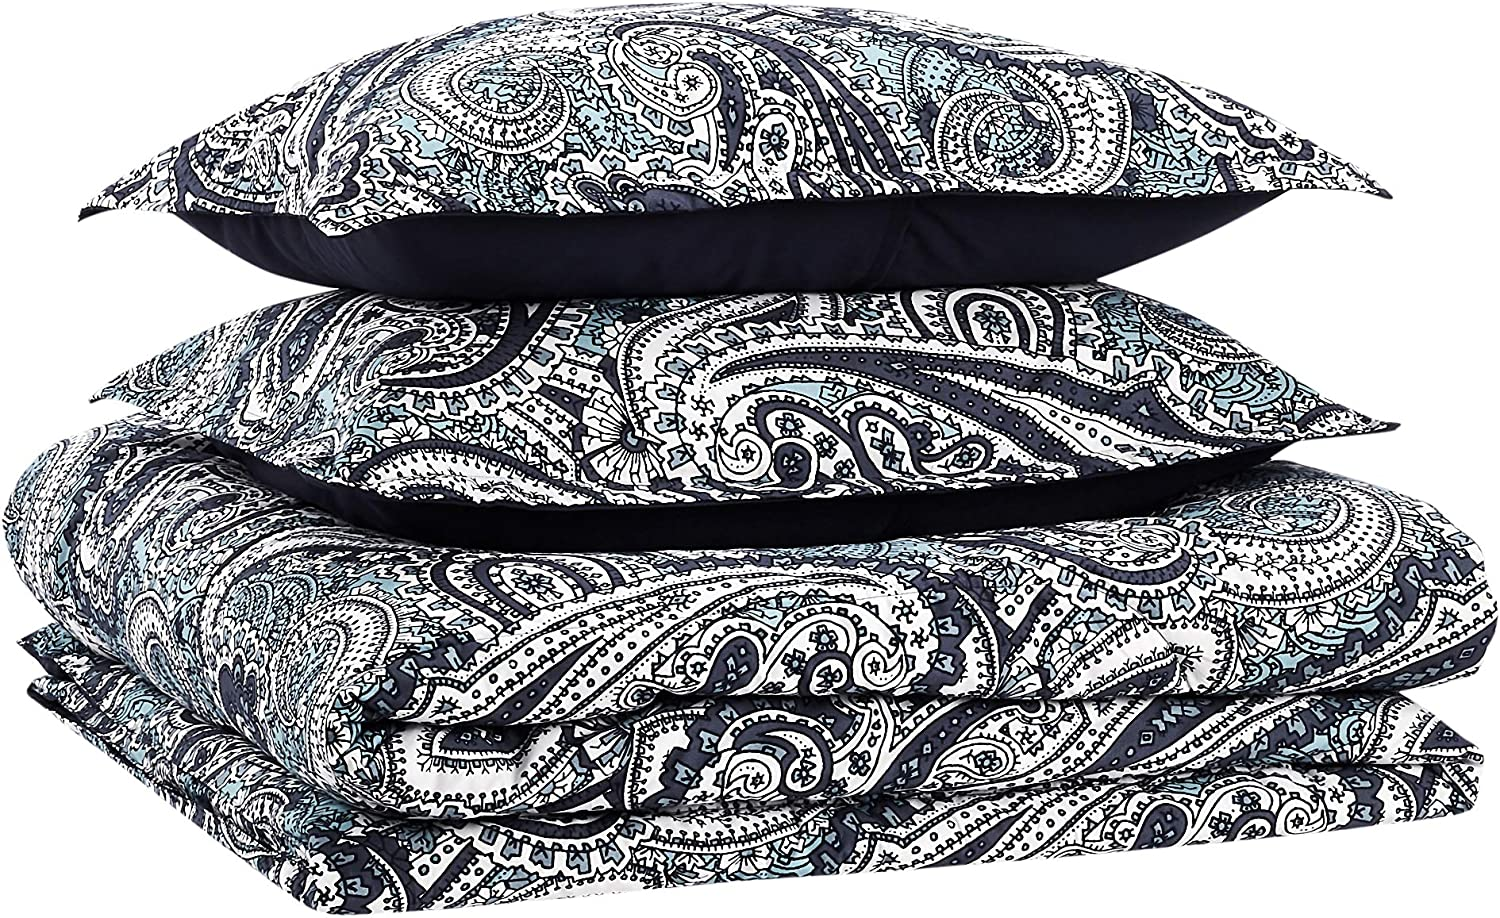 AmazonBasics Comforter Set, King, Blue Paisley, Microfiber, Ultra-Soft